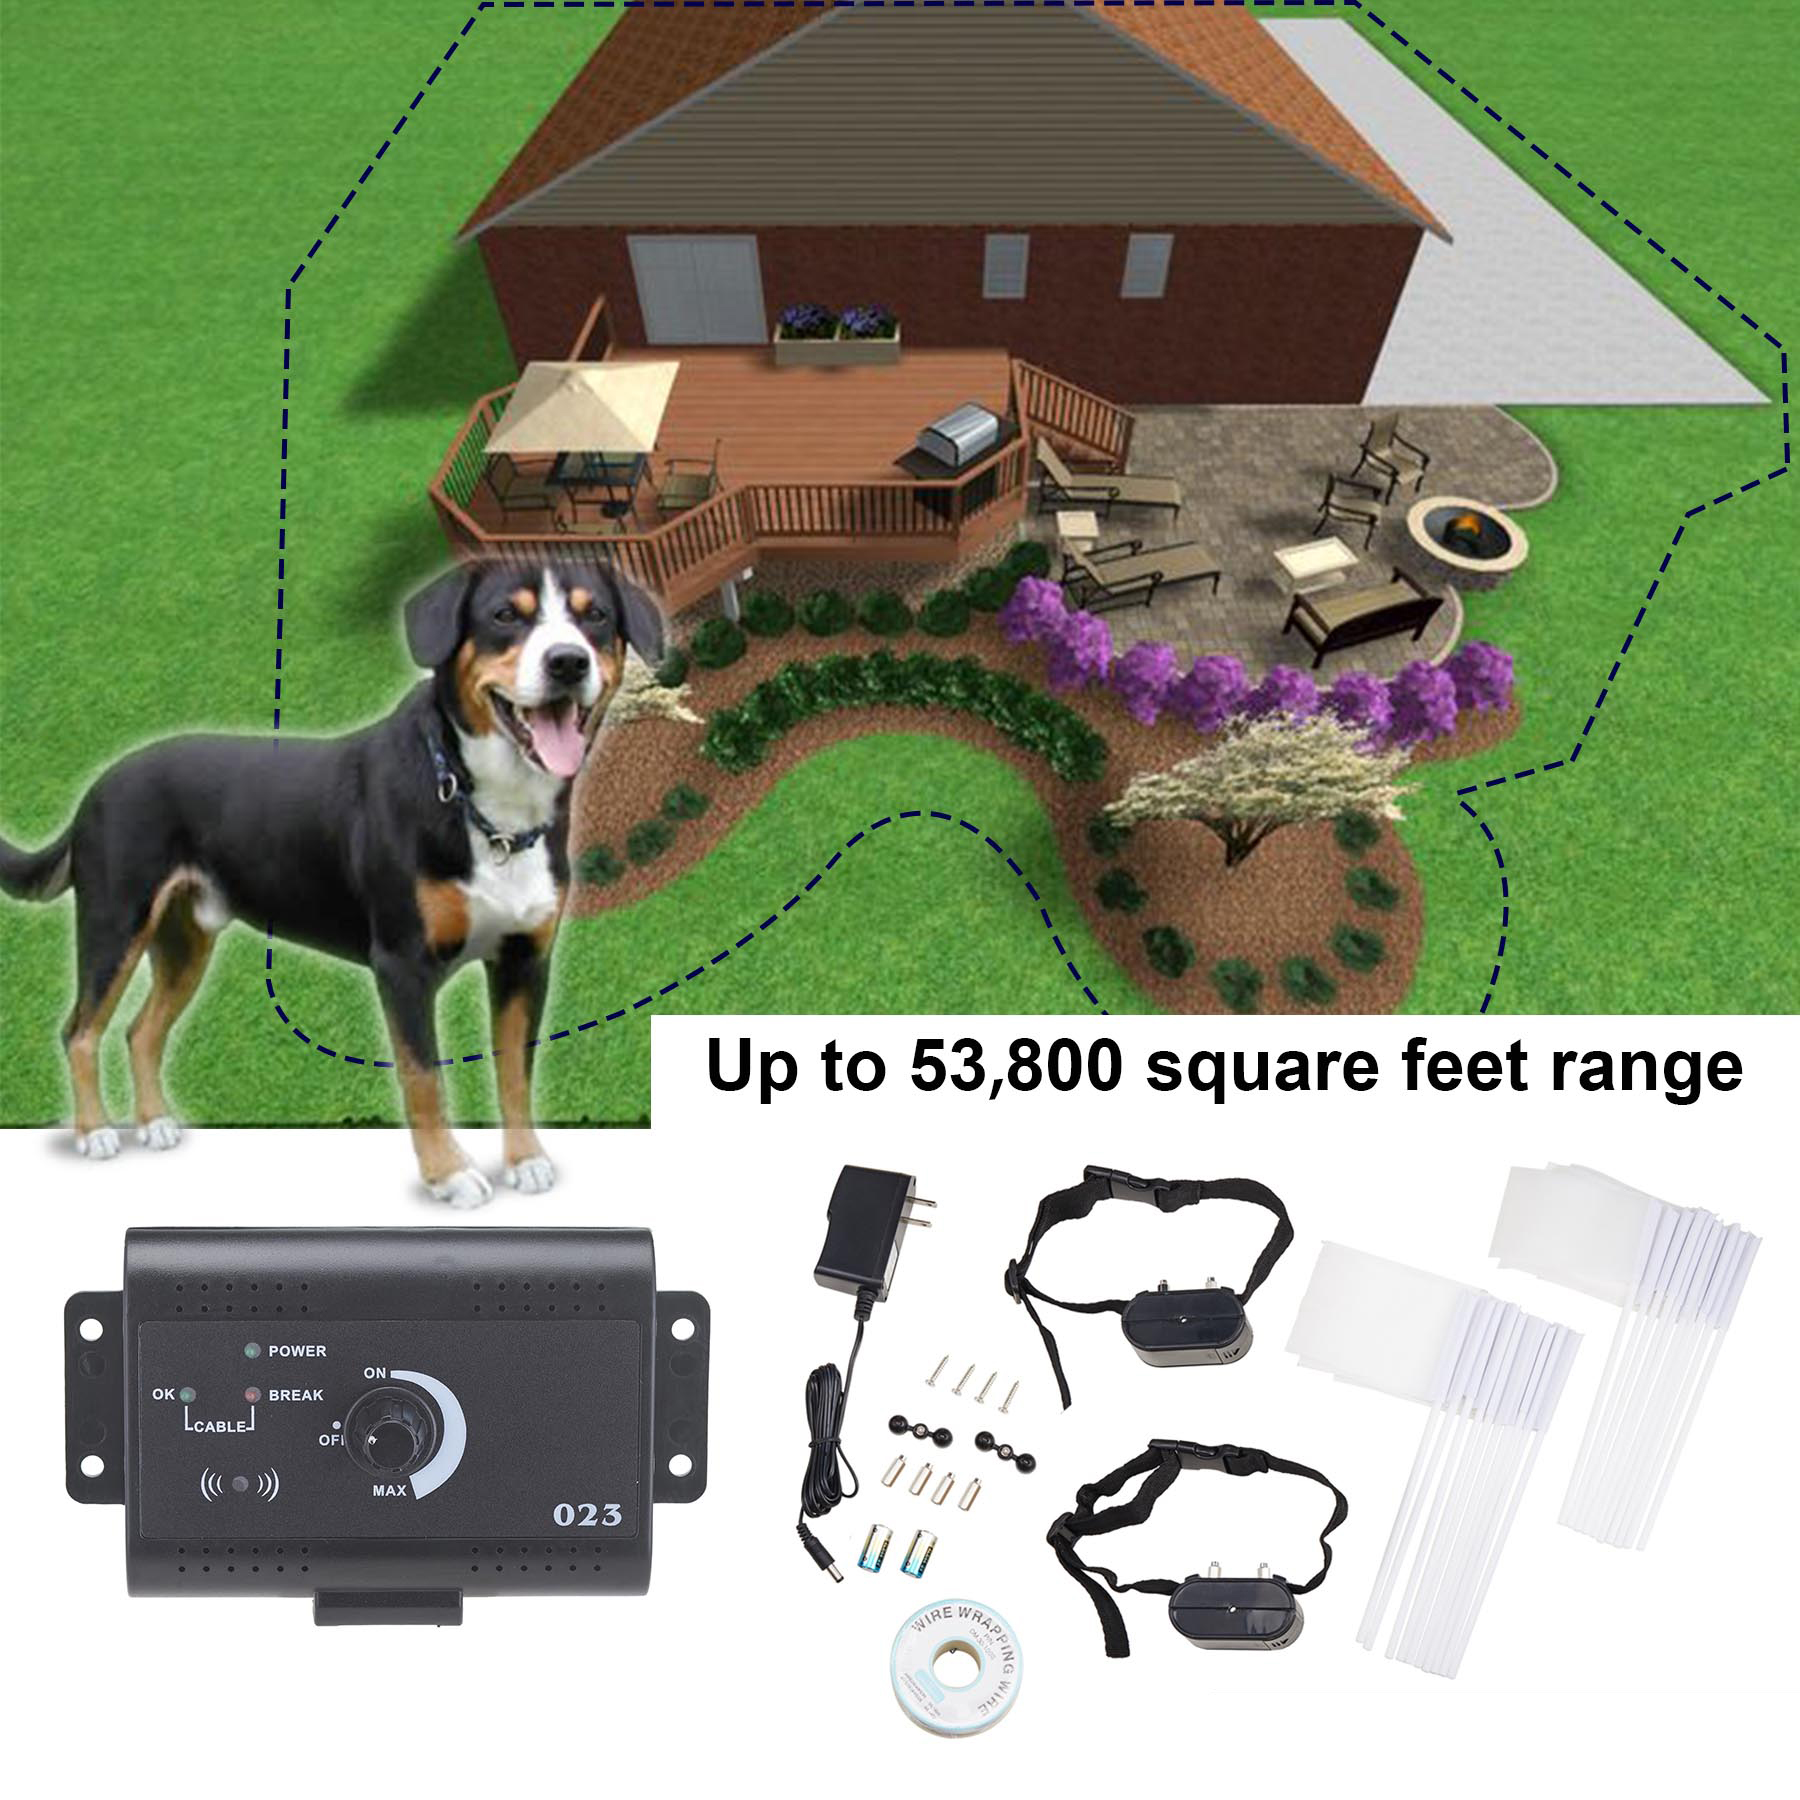 Underground Waterproof Electric Dog Fence System 2 Shock Collars for 2 Dogs by Pinty